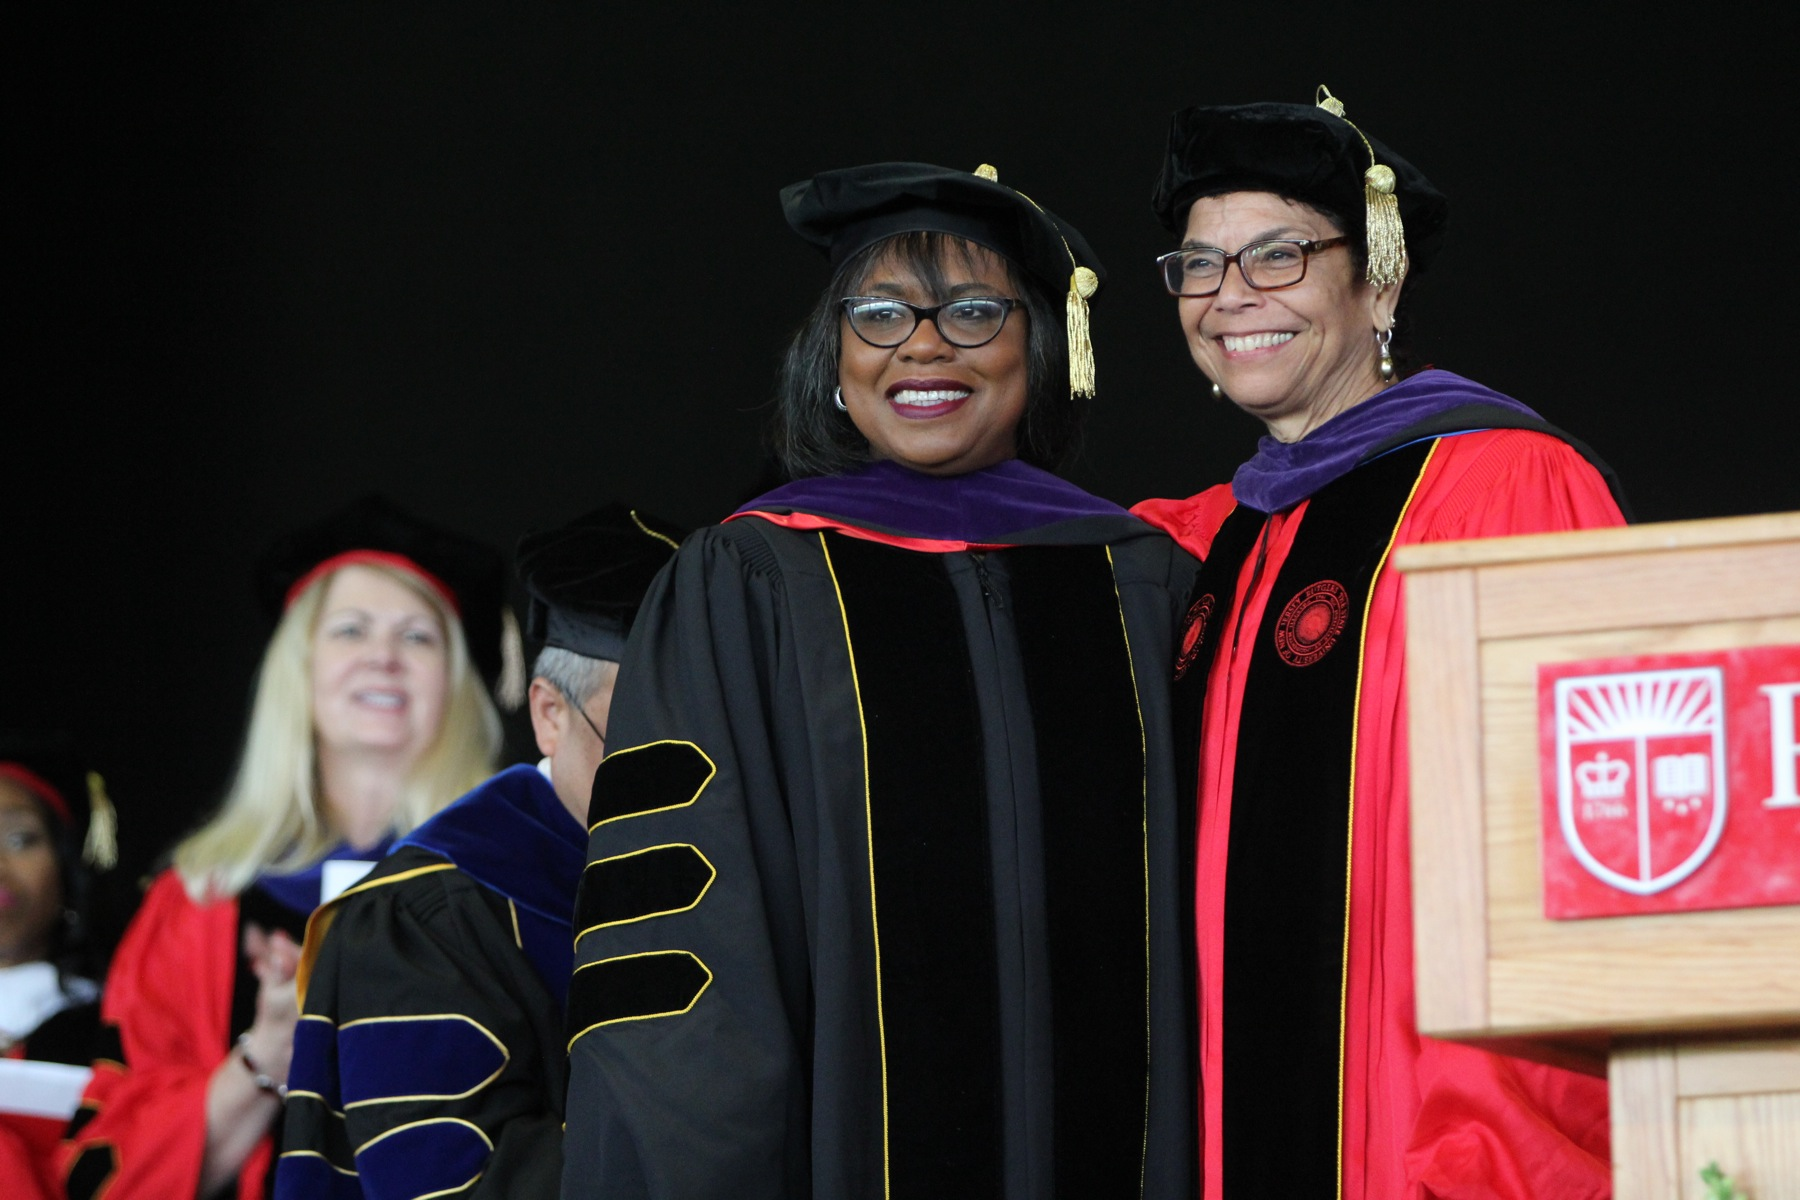 Anita Hill (center) receives an honorary doctor of laws degree from Rutgers Law School Chancellor Phoebe Haddon during a commencement ceremony in Camden.